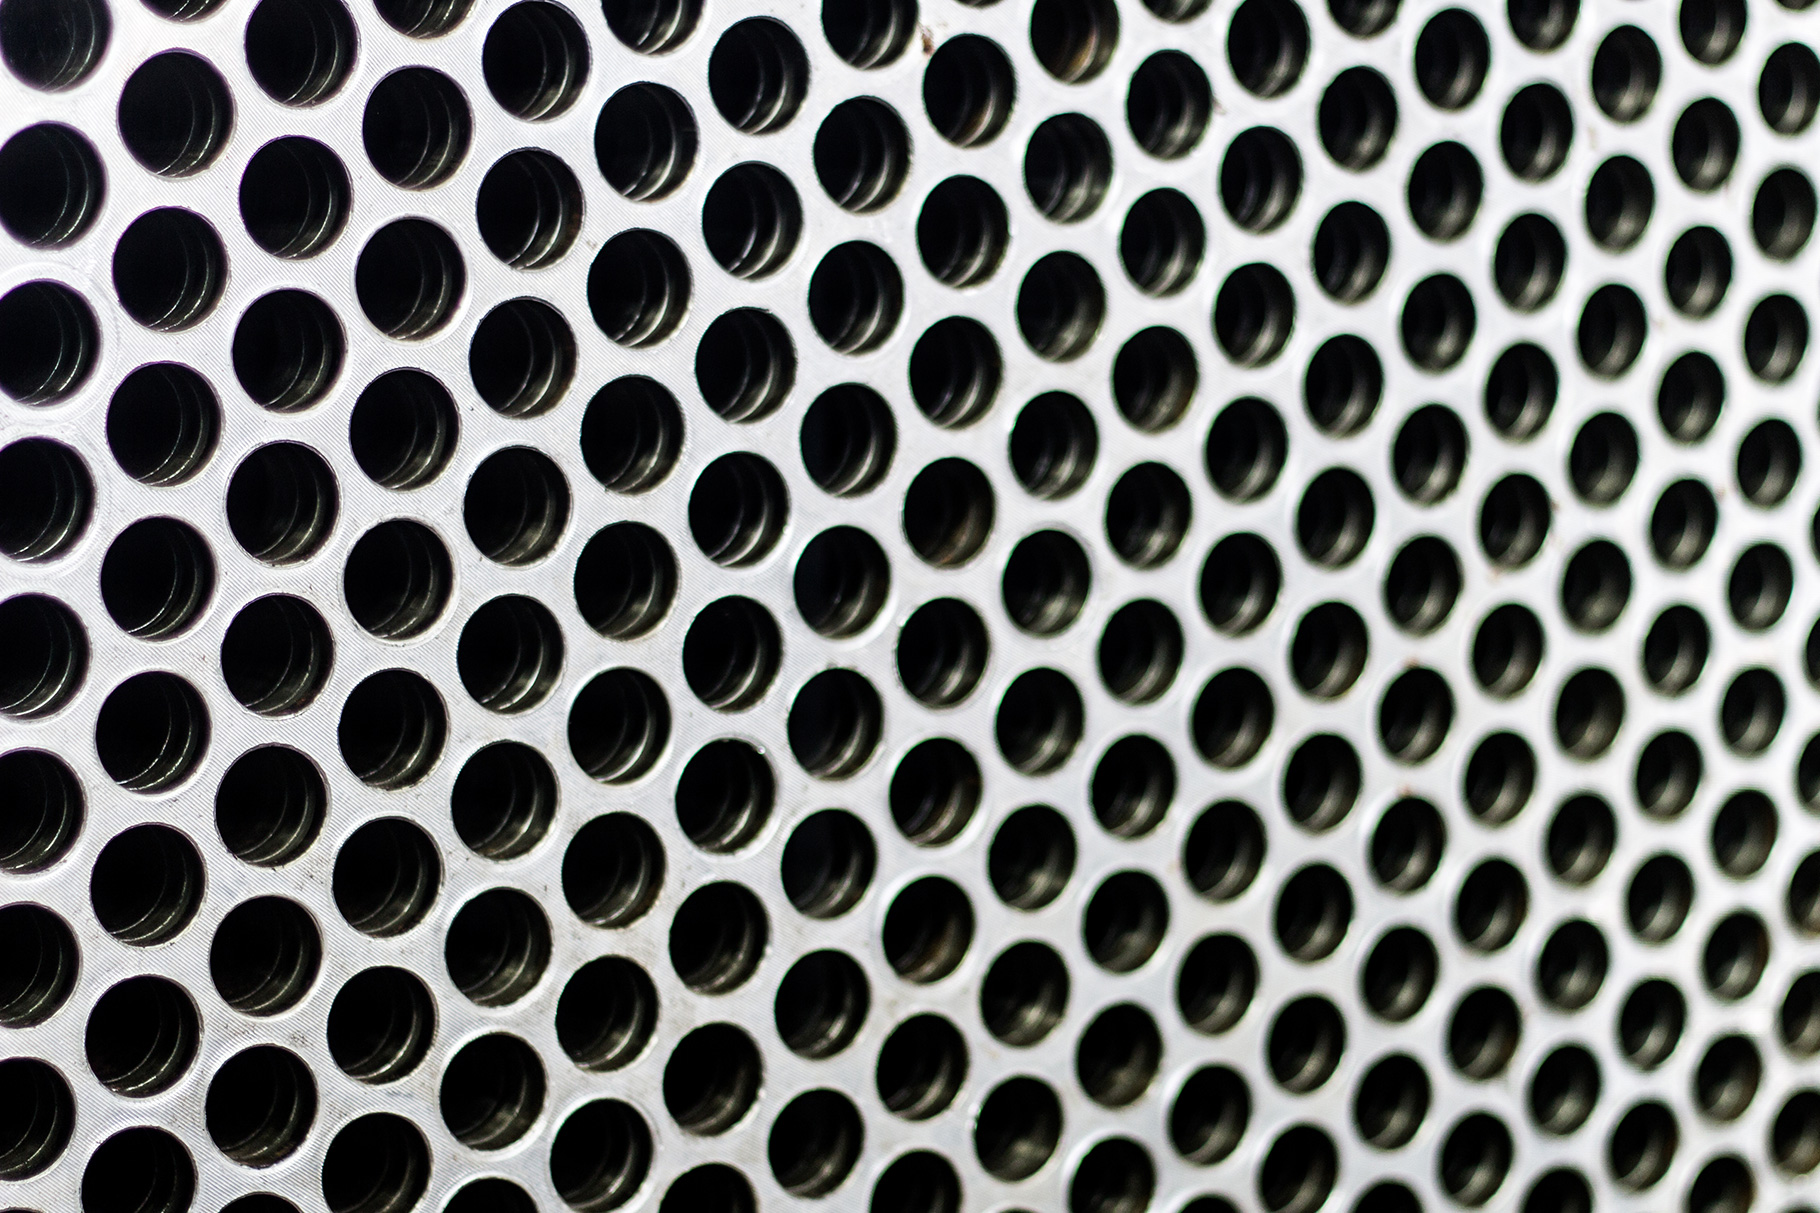 HOW TO CLEAN A HEAT EXCHANGER